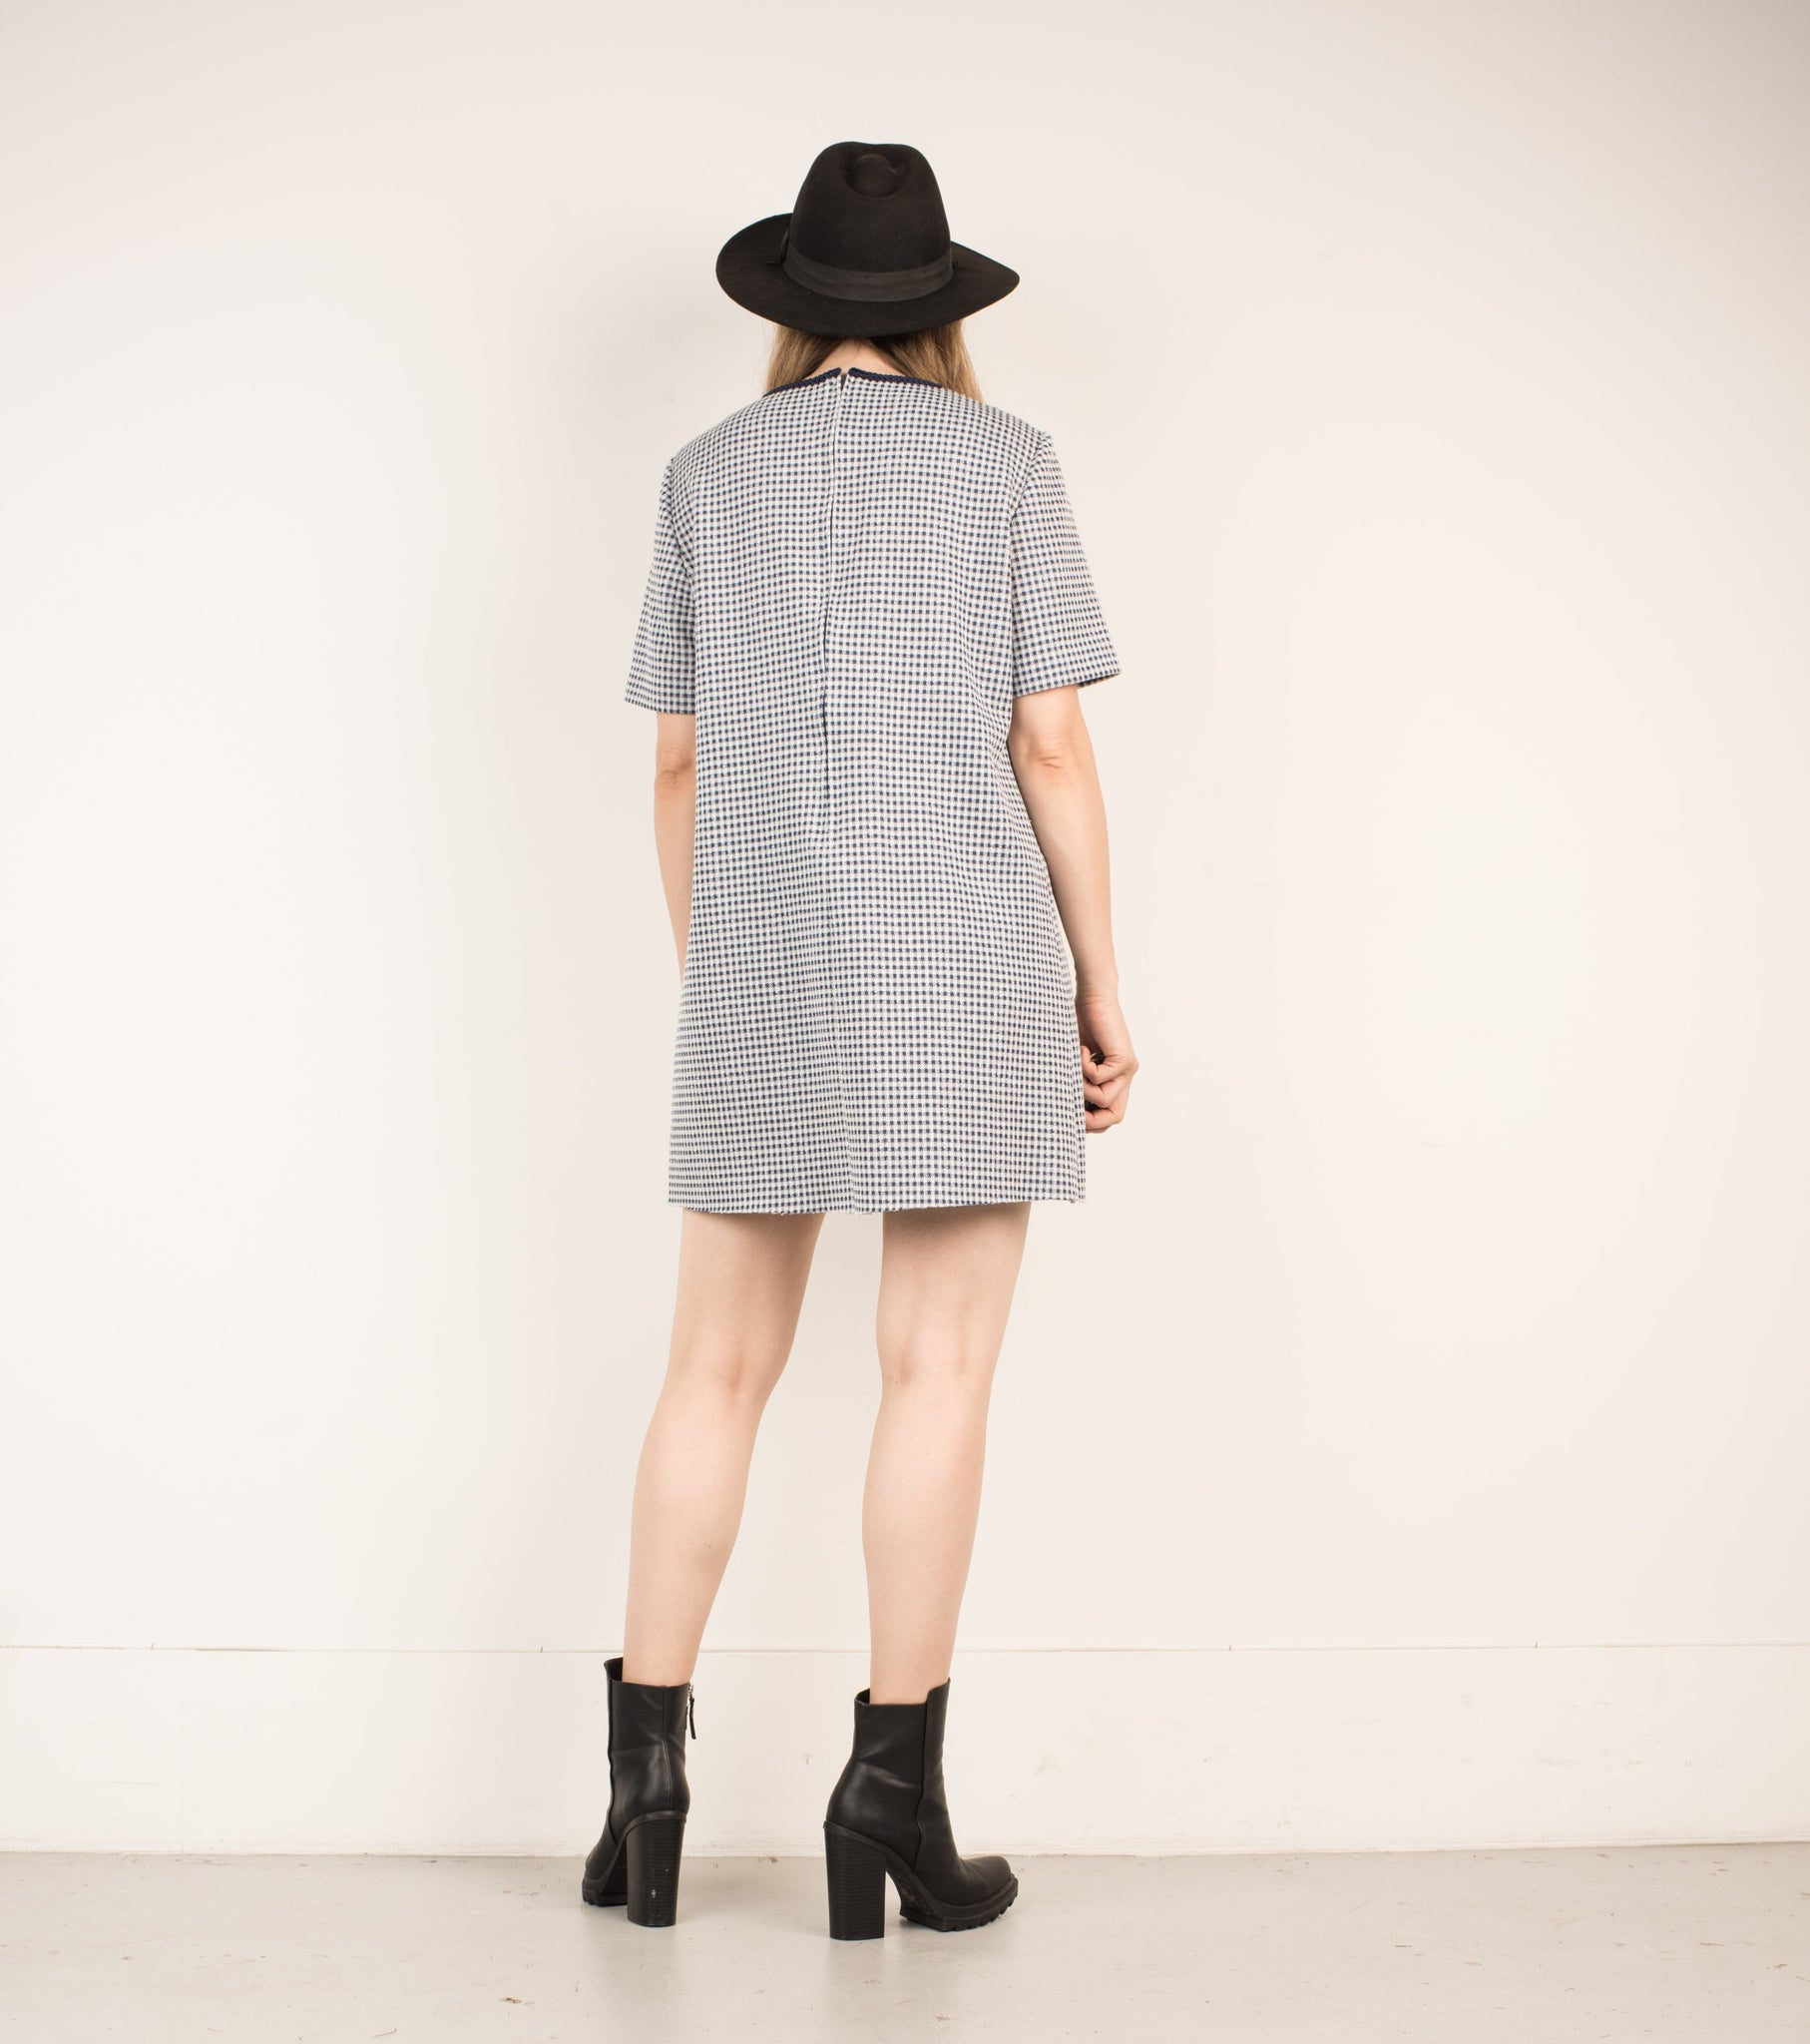 Vintage Bue + White Gingham Dress / S - Closed Caption